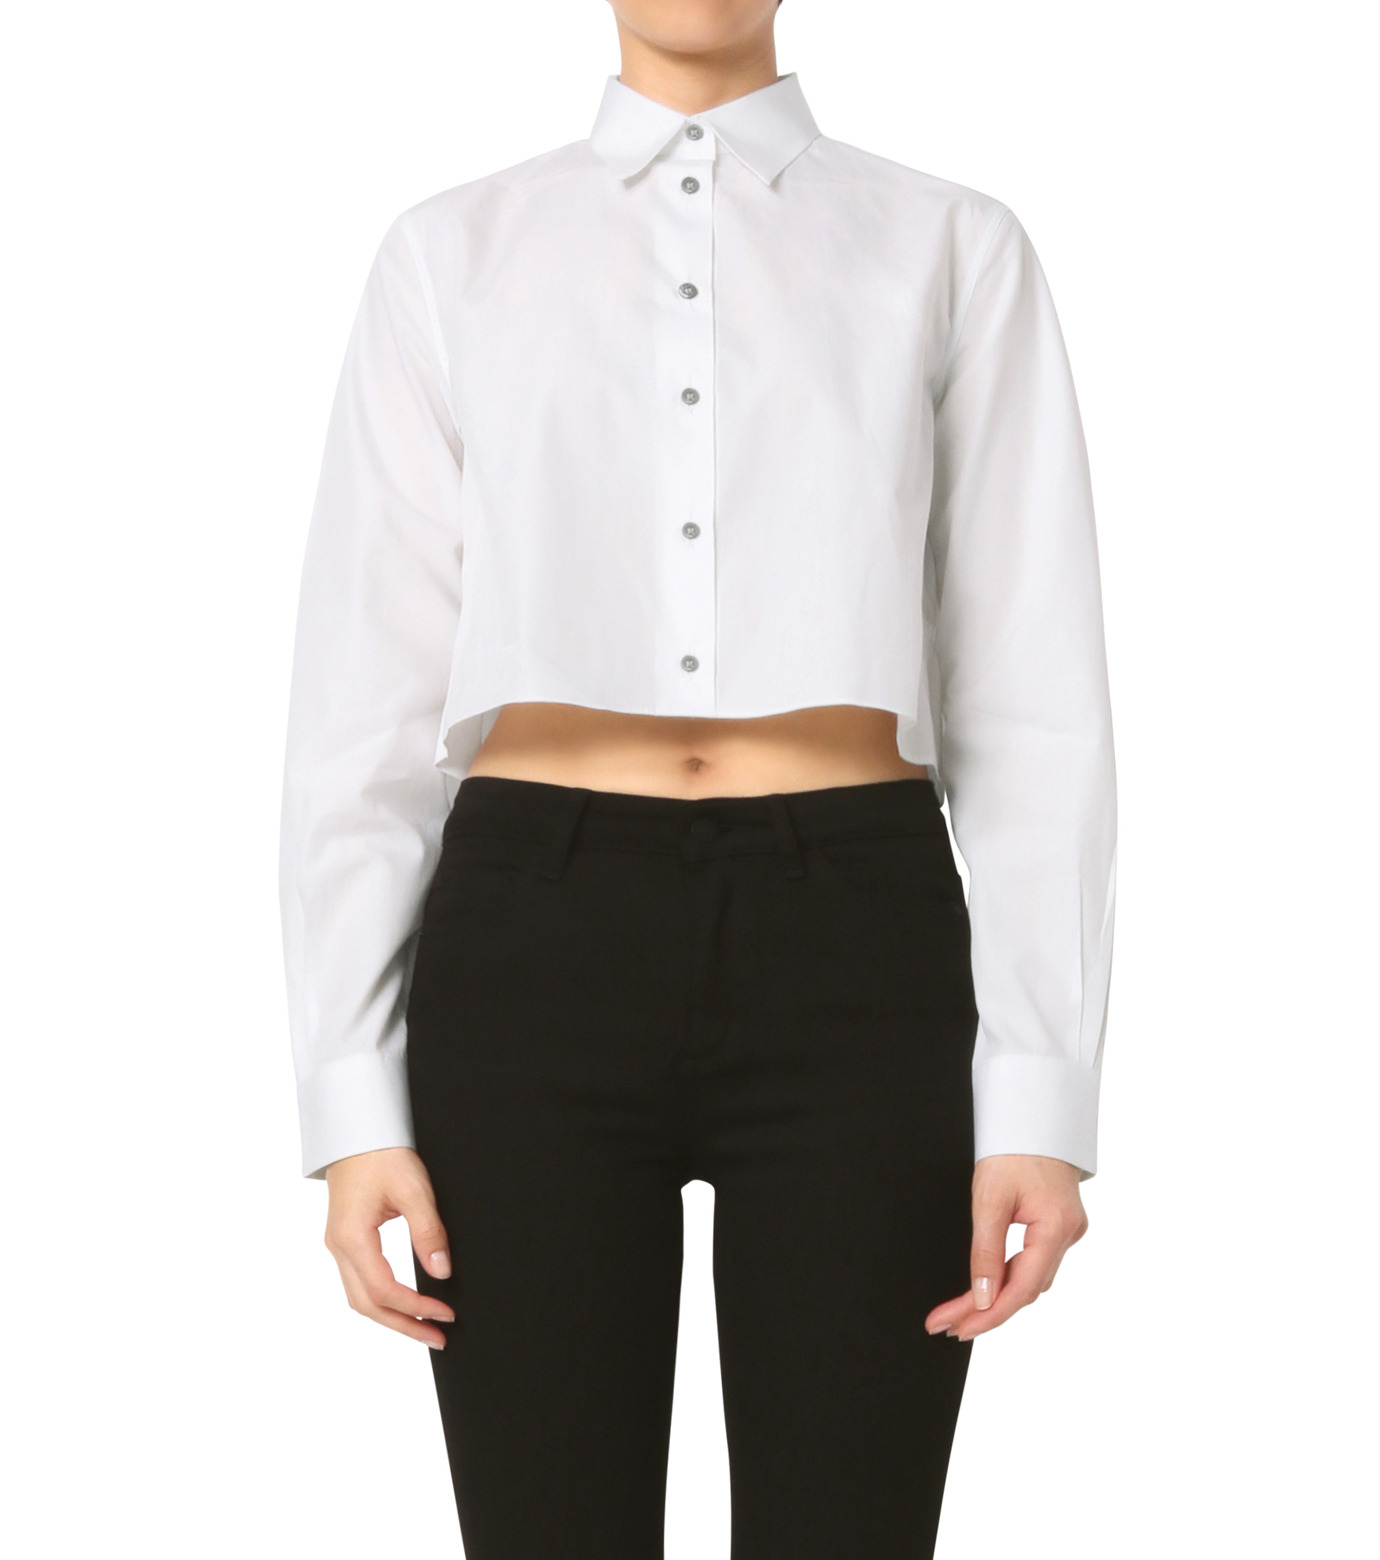 Jourden(ジョーダン)のWhite Cropped Shirt-WHITE(シャツ/shirt)-1603WC3TH01-4 拡大詳細画像1